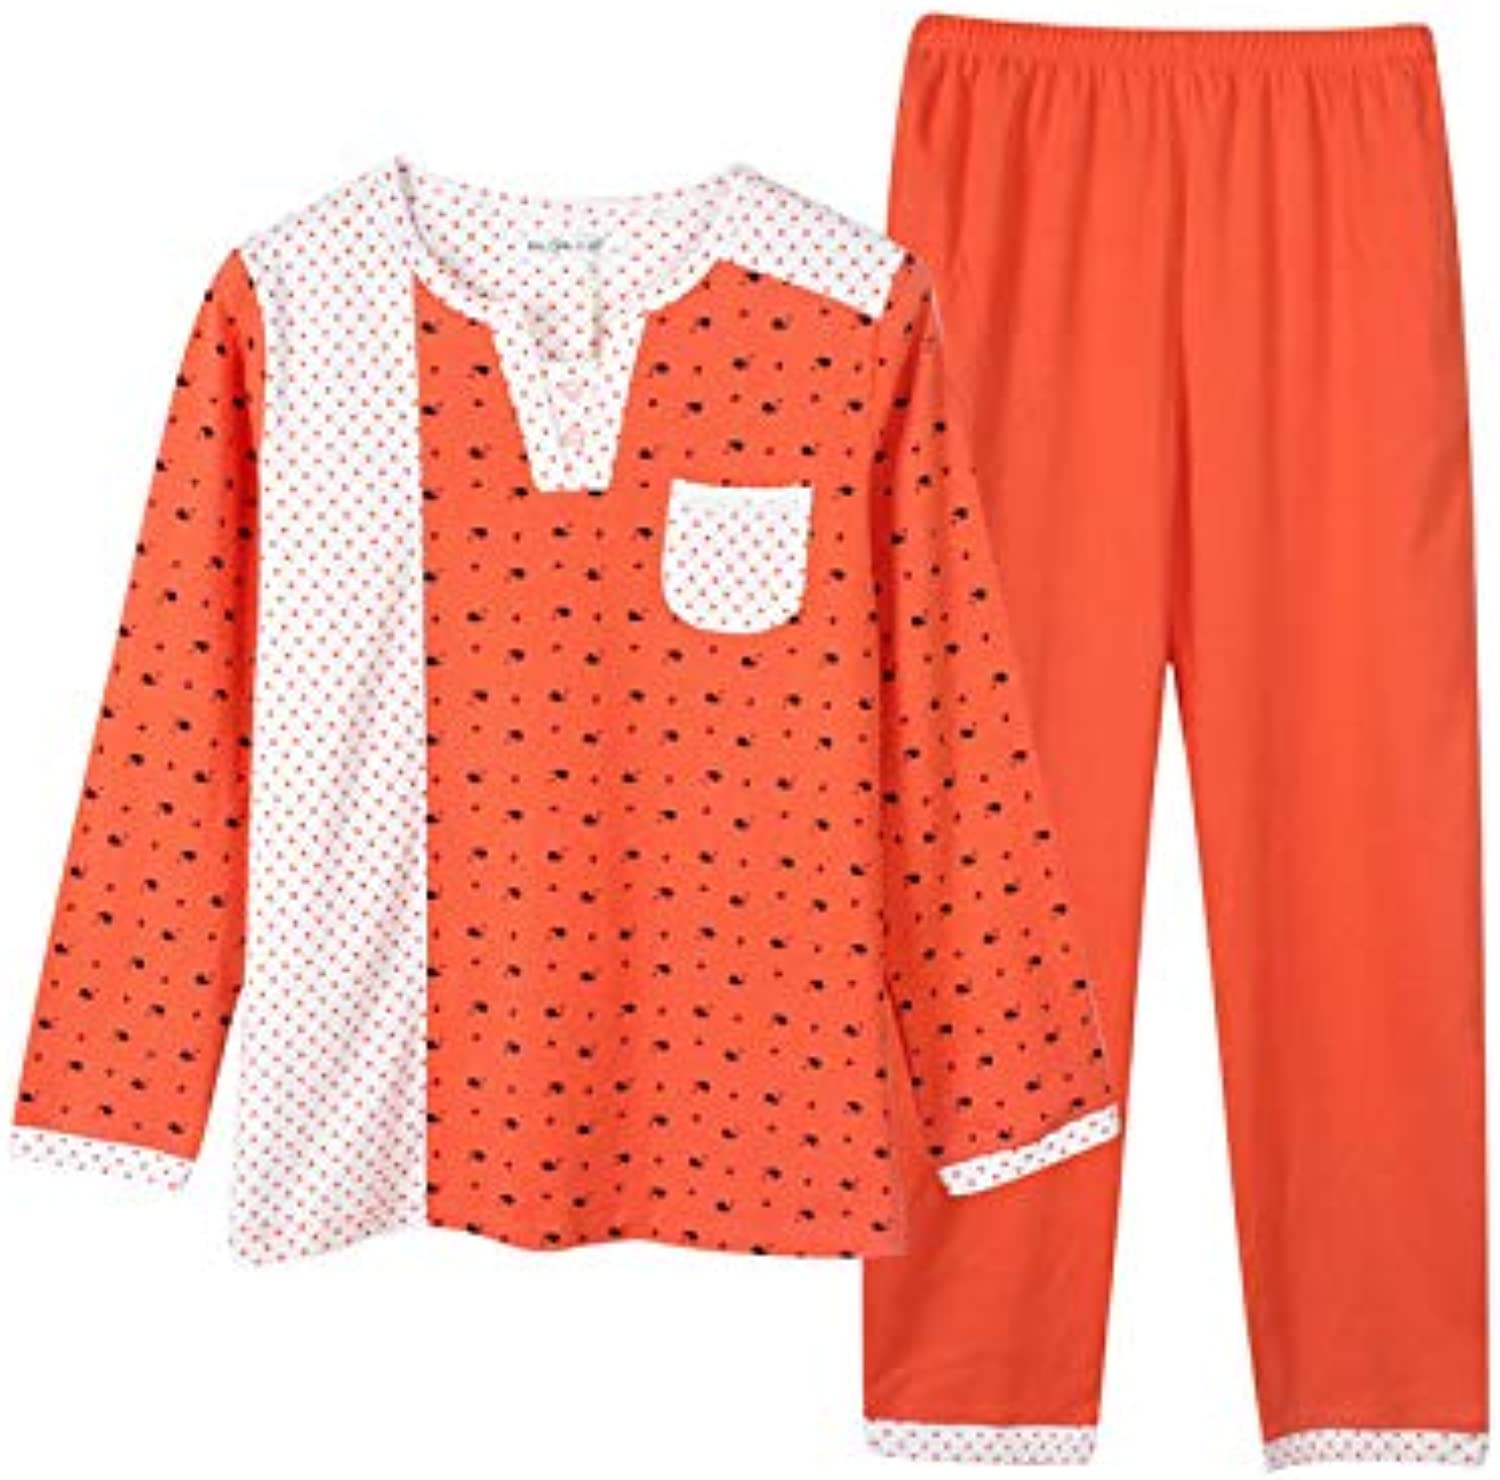 IANXI Home Spring and Autumn LongSleeved Cotton Korean Cute Big Size Fat mm Autumn and Winter Loose Casual Pajamas Women's Home Service Suit (color   orange, Size   M)